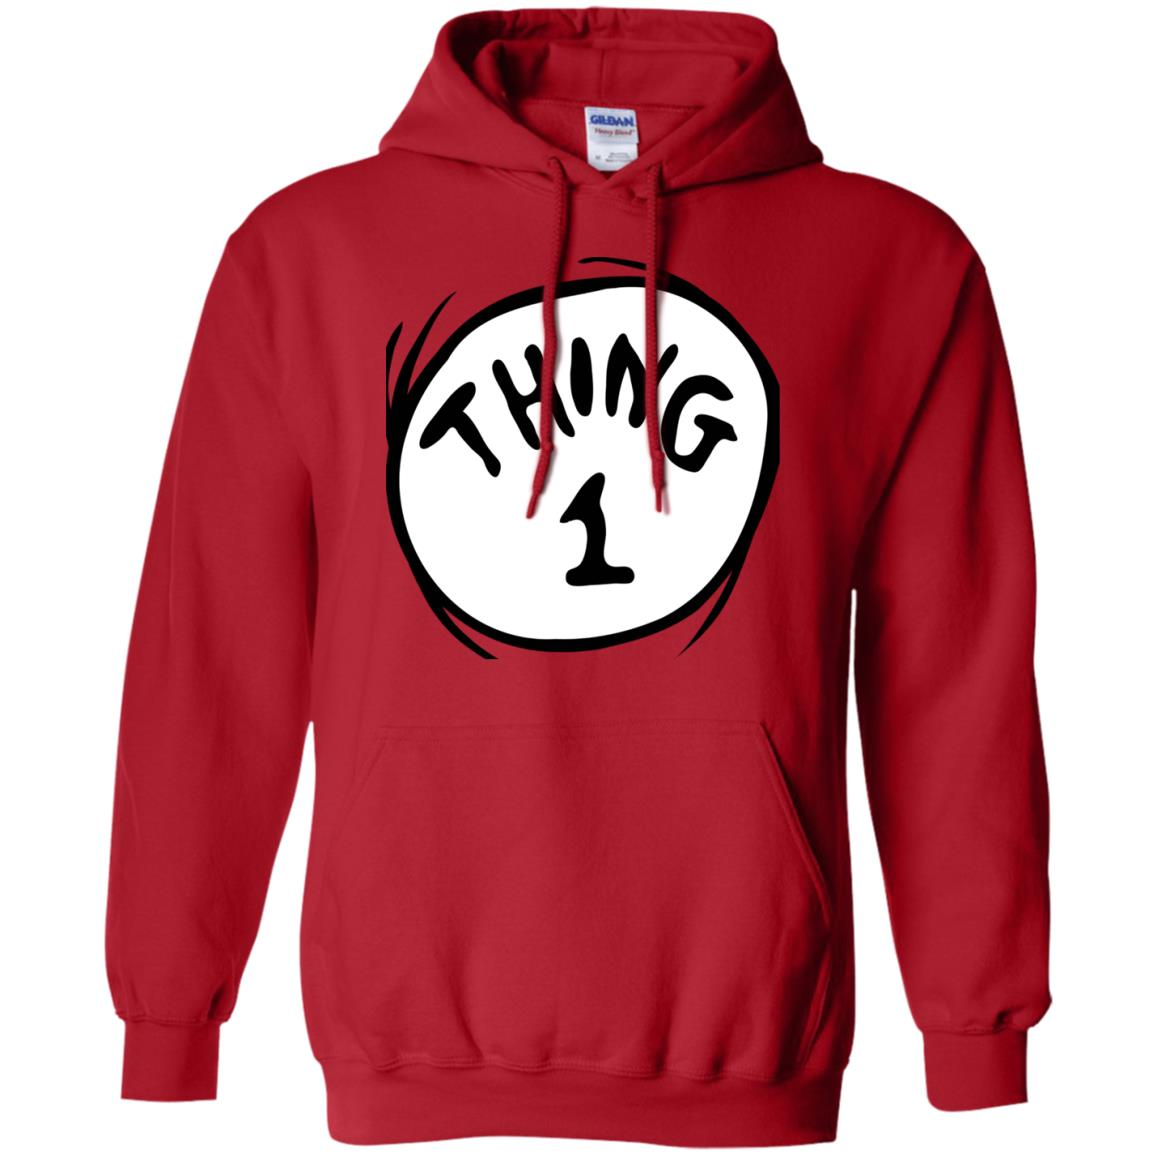 df6321be Awesome dr. seuss thing 1 emblem red t shirt - 99promocode